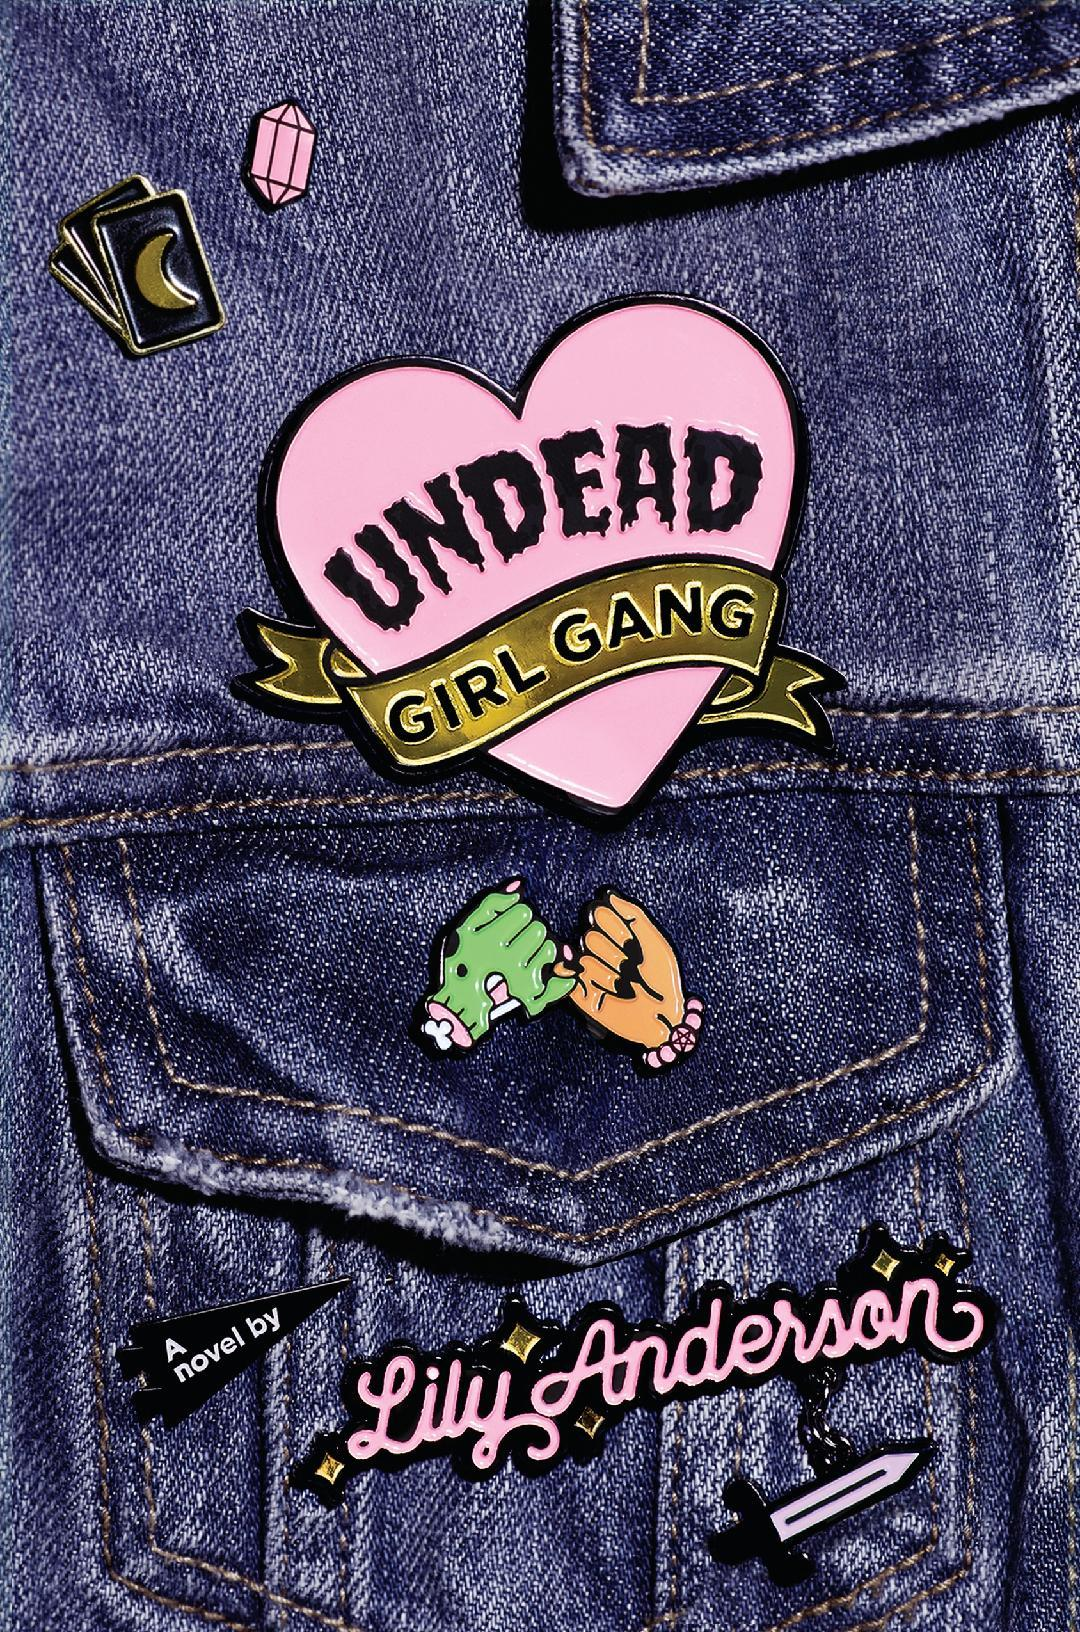 The cover of the book, which is a jean jacket with enamel pins.